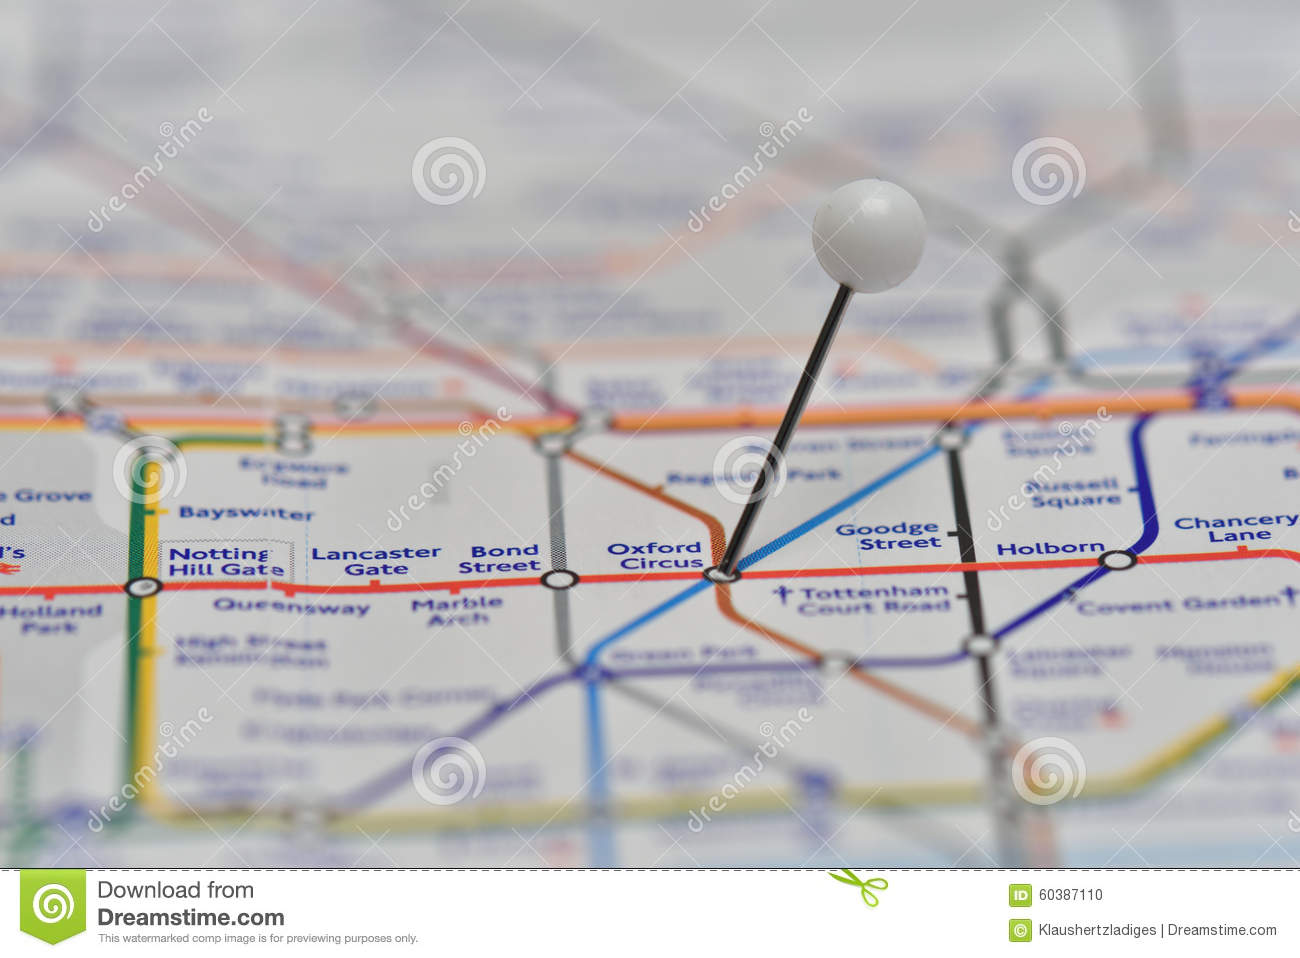 London underground map with pin in oxford circus station stock photo royalty free stock photo gumiabroncs Choice Image